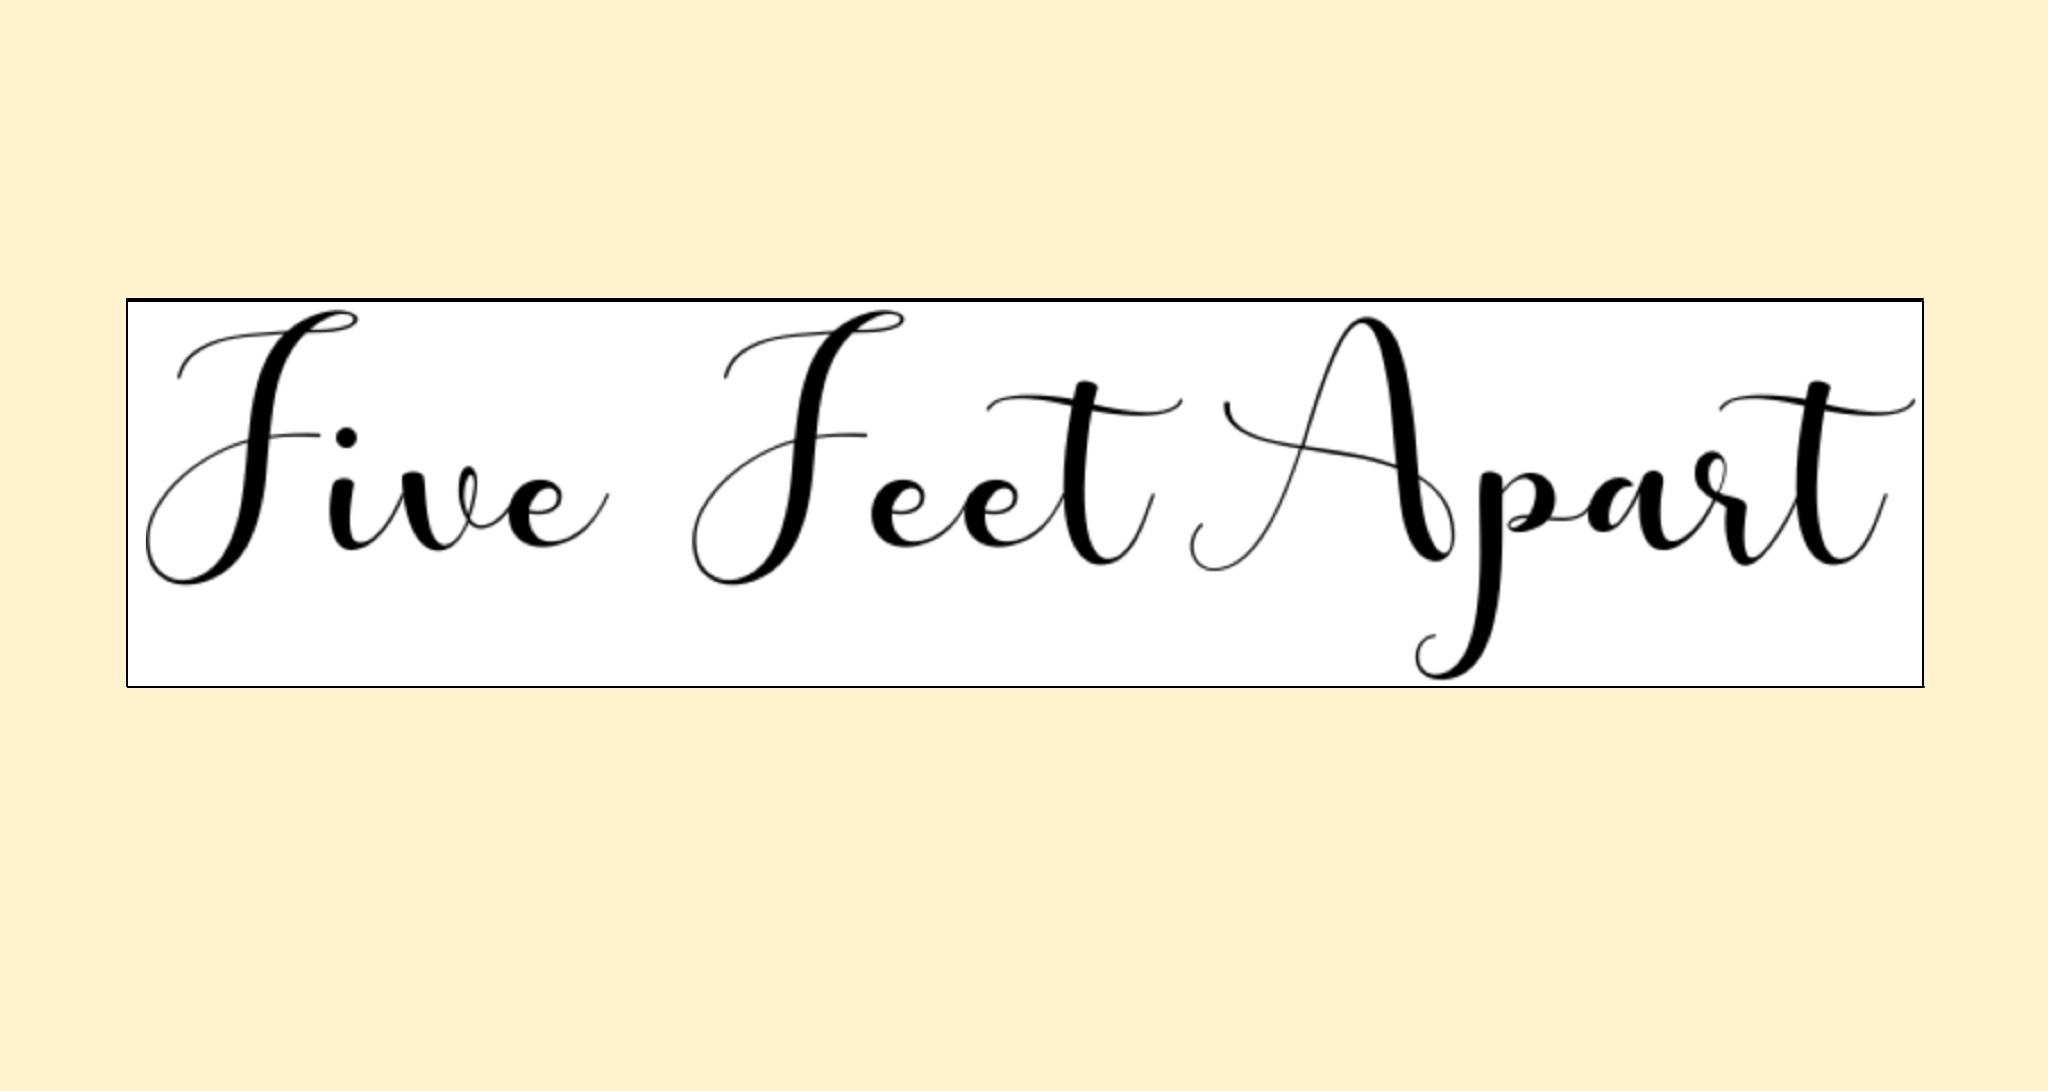 All about 'Five Feet Apart' By Charlotte Loveland, Surbiton High School